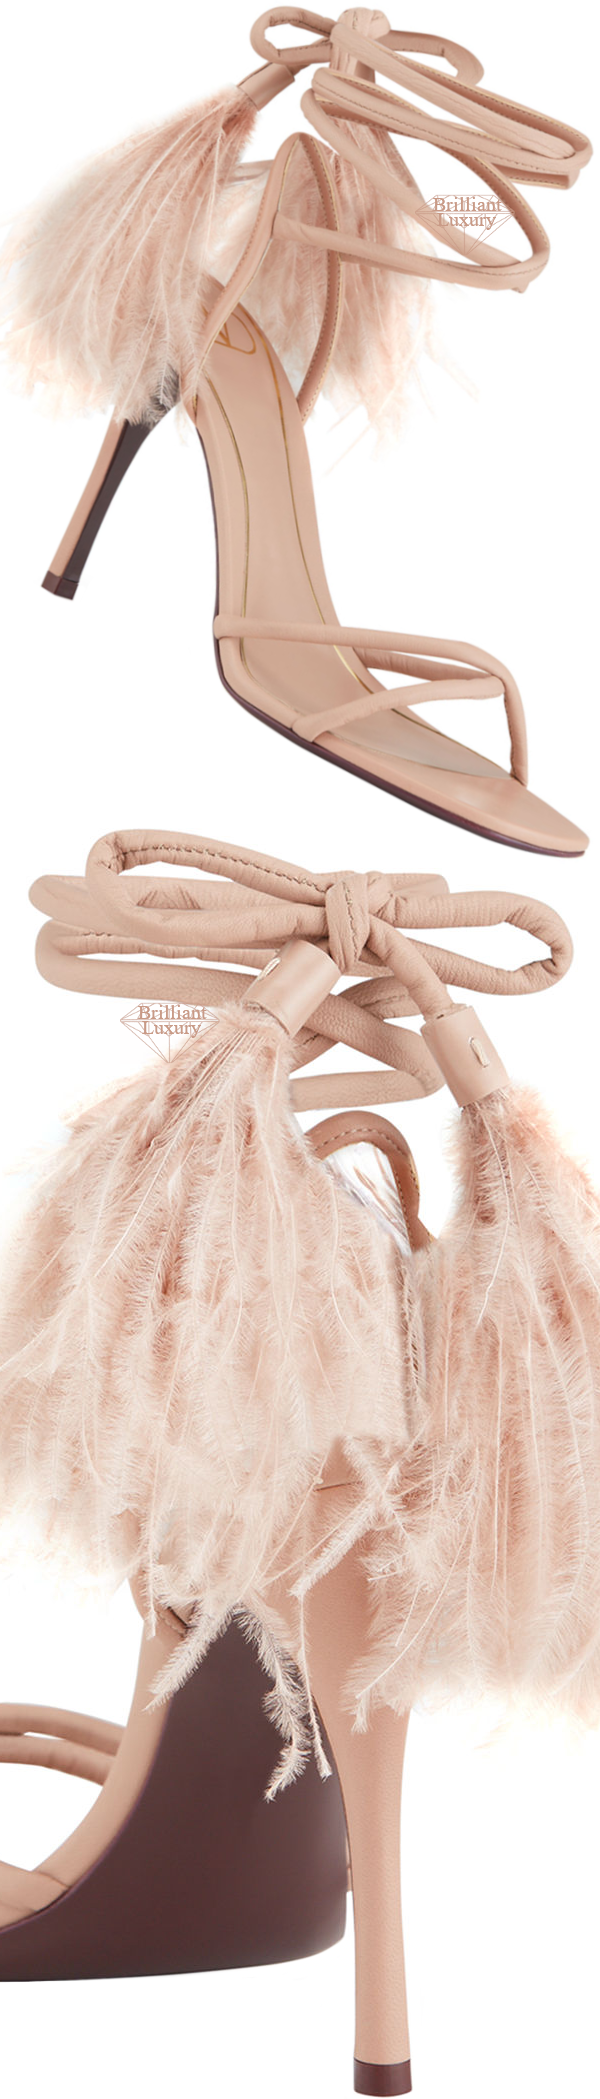 Shoe Collection Spring 2020 Valentino Ostrich Cream Feather Ankle-Wrap Stiletto Sandals